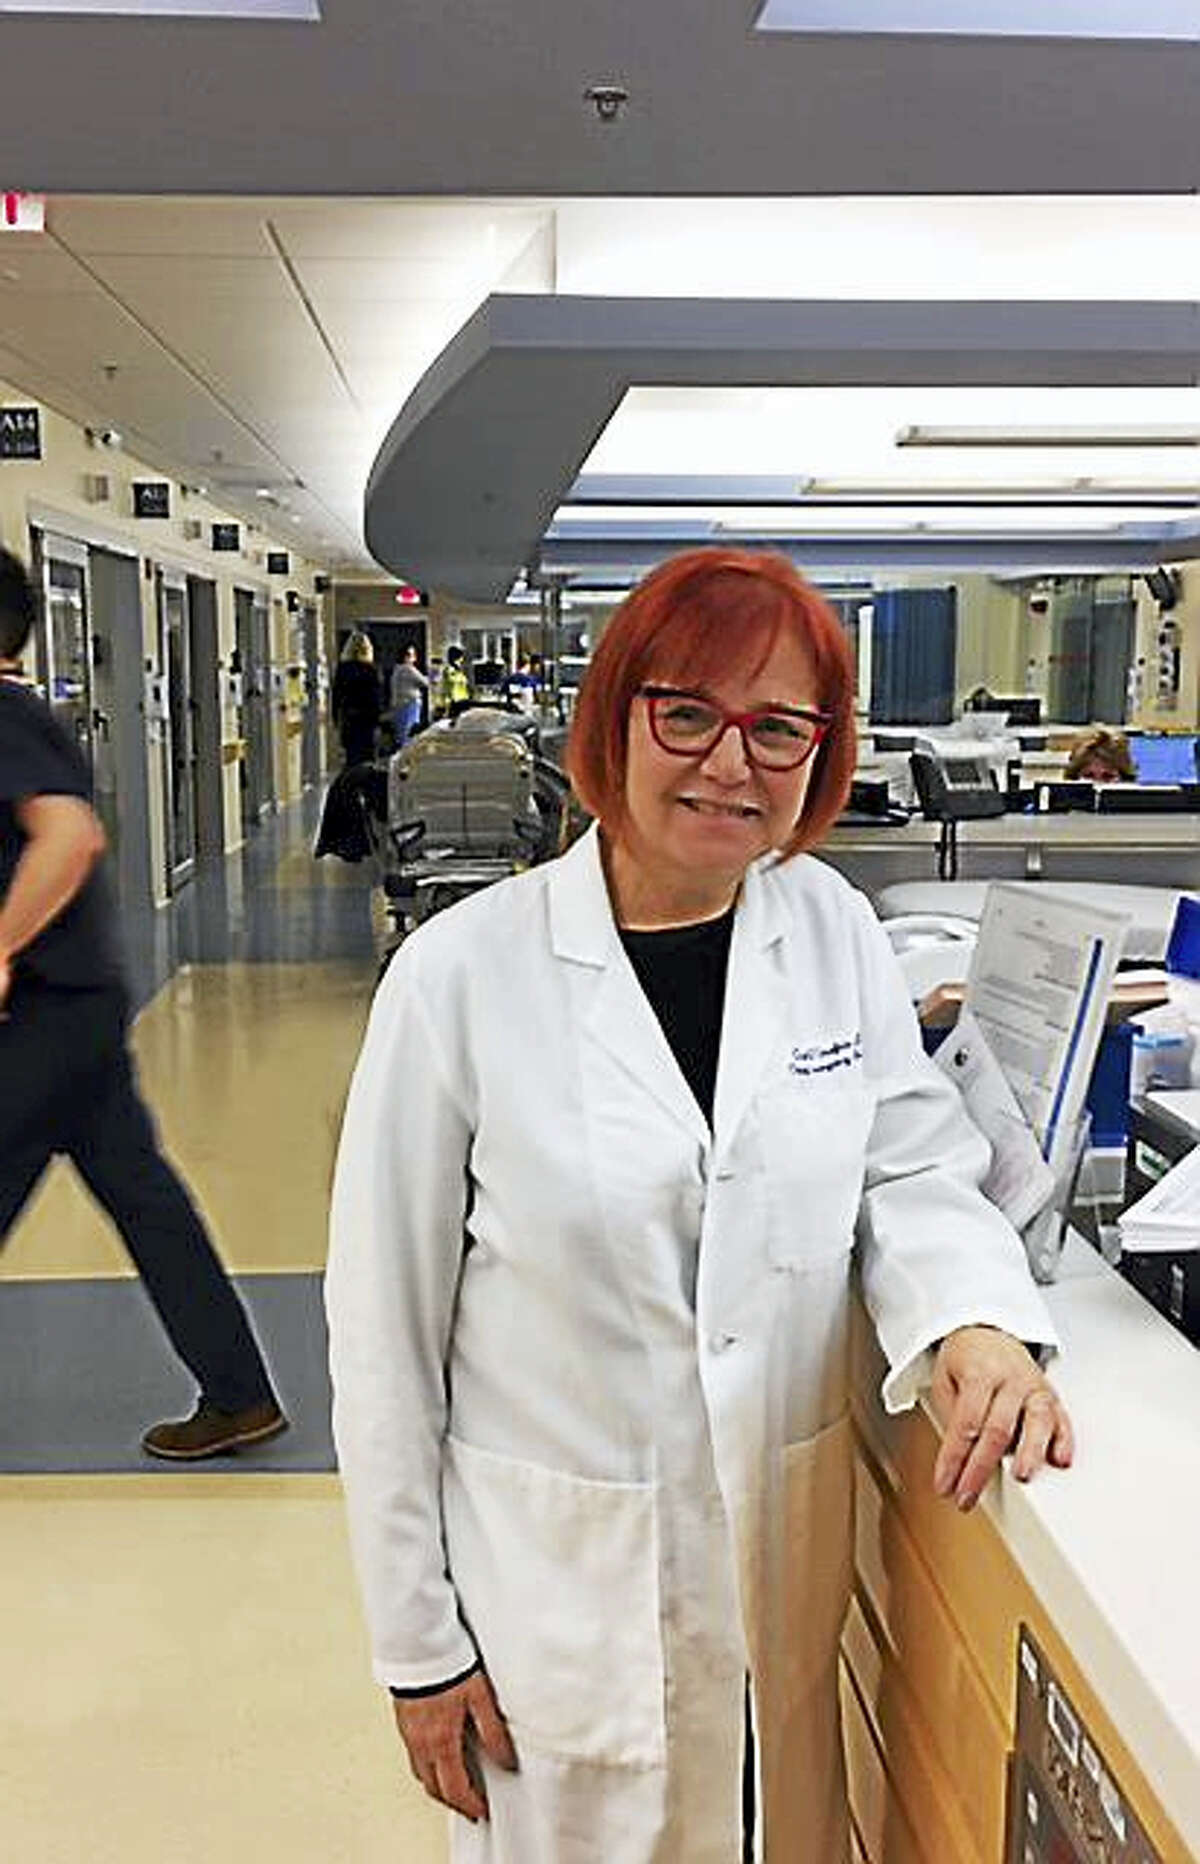 Dr. Gail D'Onofrio, chief of emergency medicine at Yale New Haven Hospital and chairwoman of emergency medicine at Yale School of Medicine.